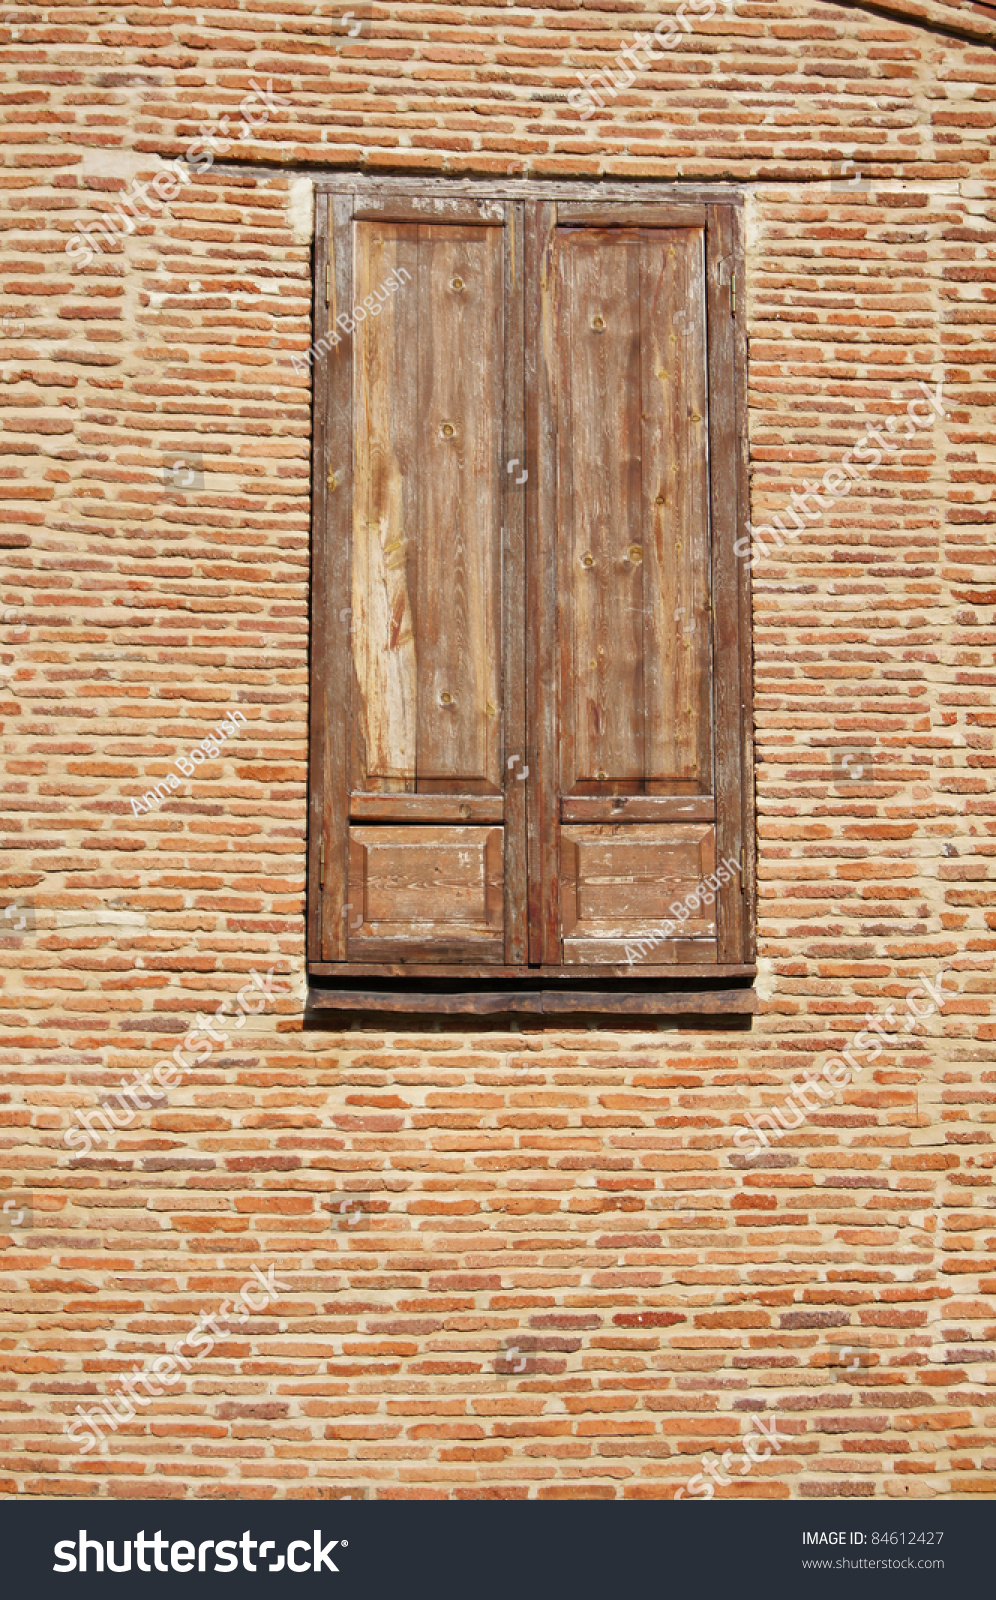 Closed Window Frame : Closed wooden shutters window frame very stock photo